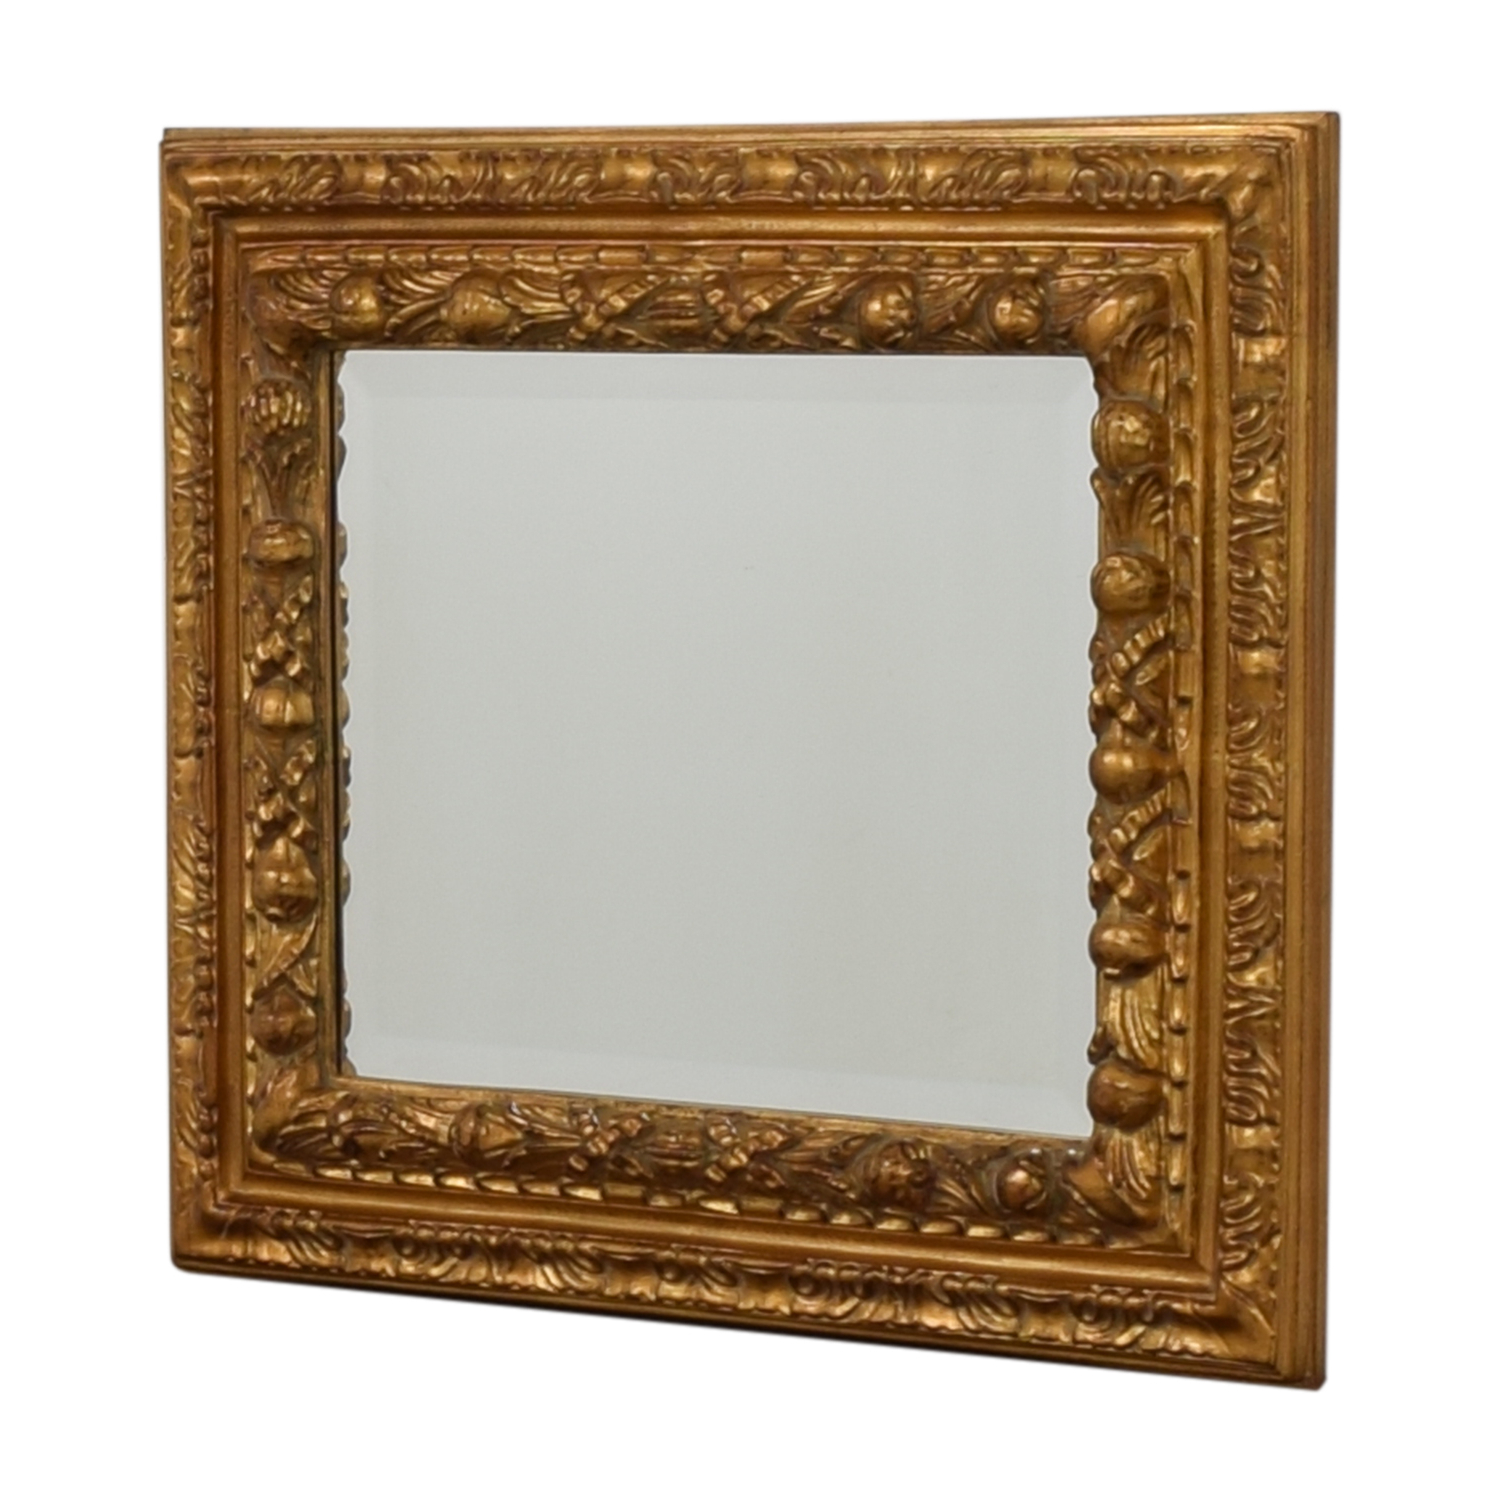 [%90% Off – Gold Distressed Wood Framed Wall Mirror / Decor Throughout Most Current Distressed Wood Wall Mirrors|Distressed Wood Wall Mirrors In 2020 90% Off – Gold Distressed Wood Framed Wall Mirror / Decor|Most Popular Distressed Wood Wall Mirrors With 90% Off – Gold Distressed Wood Framed Wall Mirror / Decor|Latest 90% Off – Gold Distressed Wood Framed Wall Mirror / Decor For Distressed Wood Wall Mirrors%] (View 1 of 20)